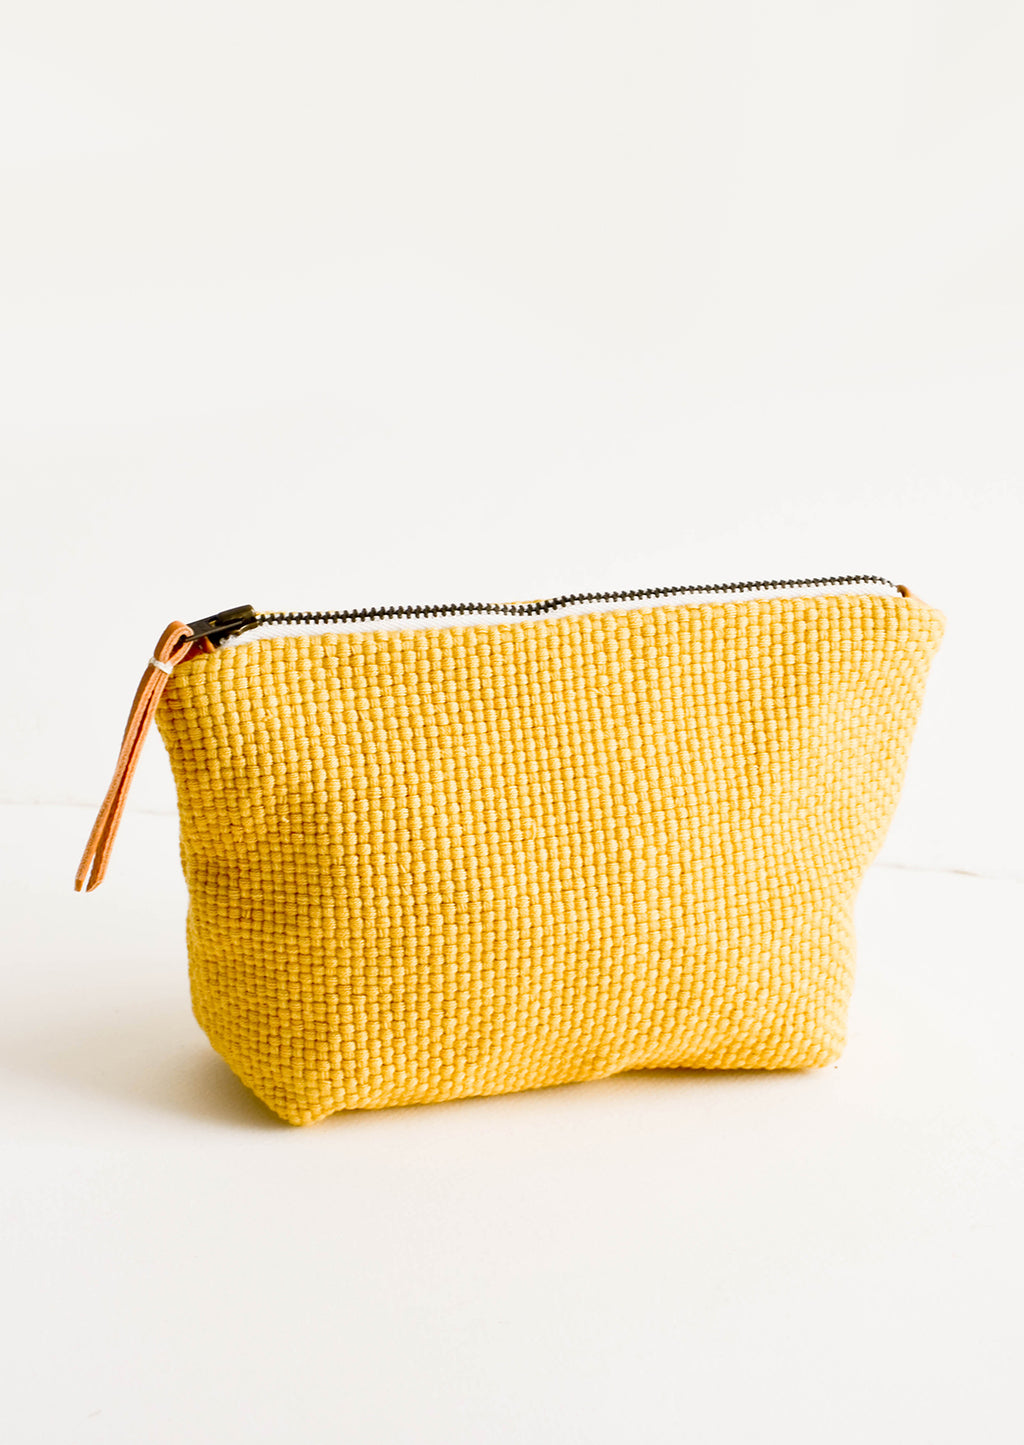 Mimosa Basketweave / Small: Cotton toiletry pouch in yellow, basketweave textured fabric. Zippered top with leather pull.